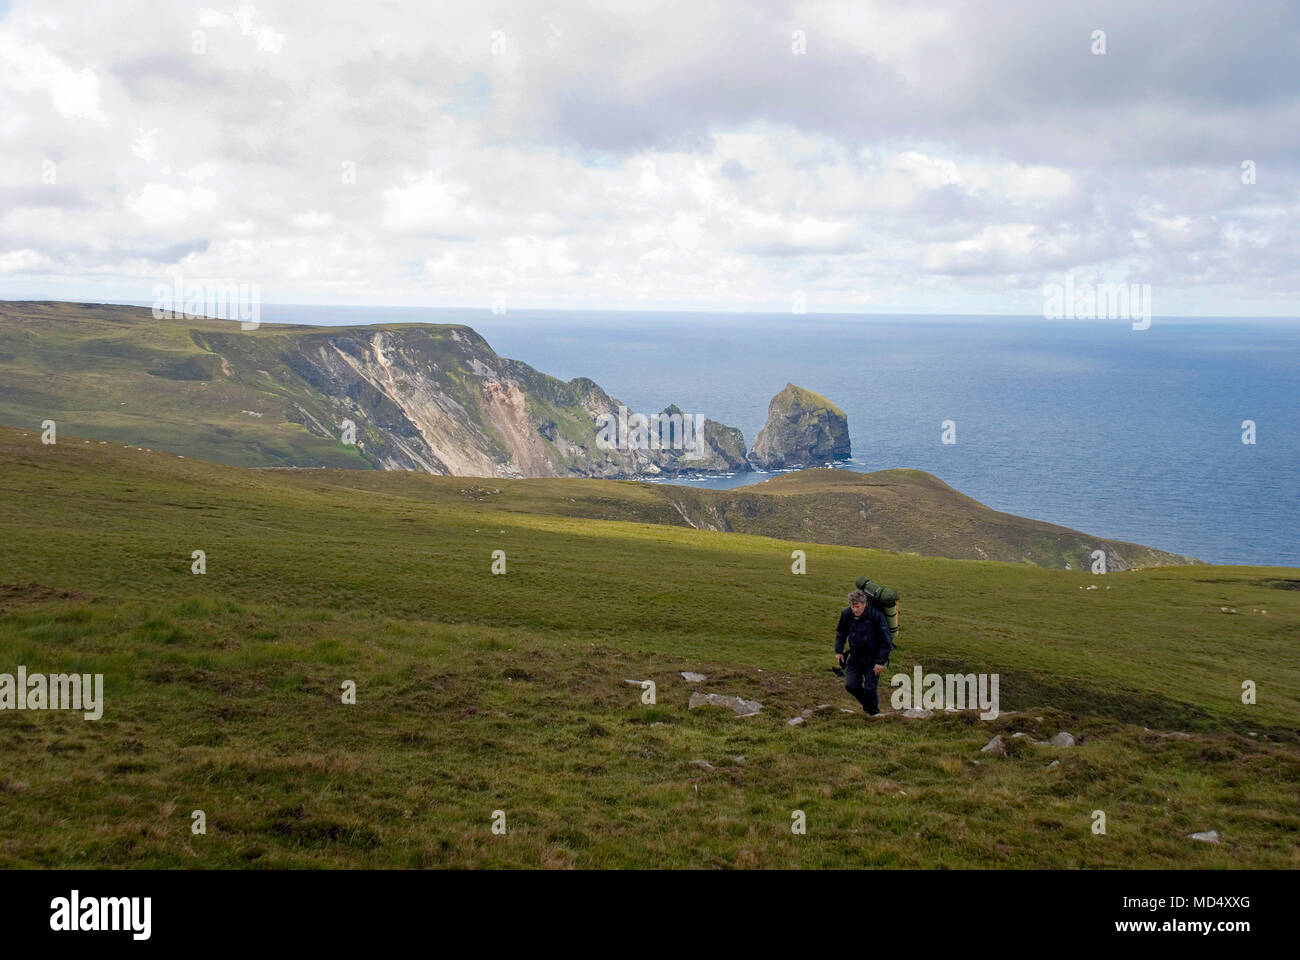 Hill walker crossing Slieve Tooey mountain from Port in County Donegal, Ireland. - Stock Image